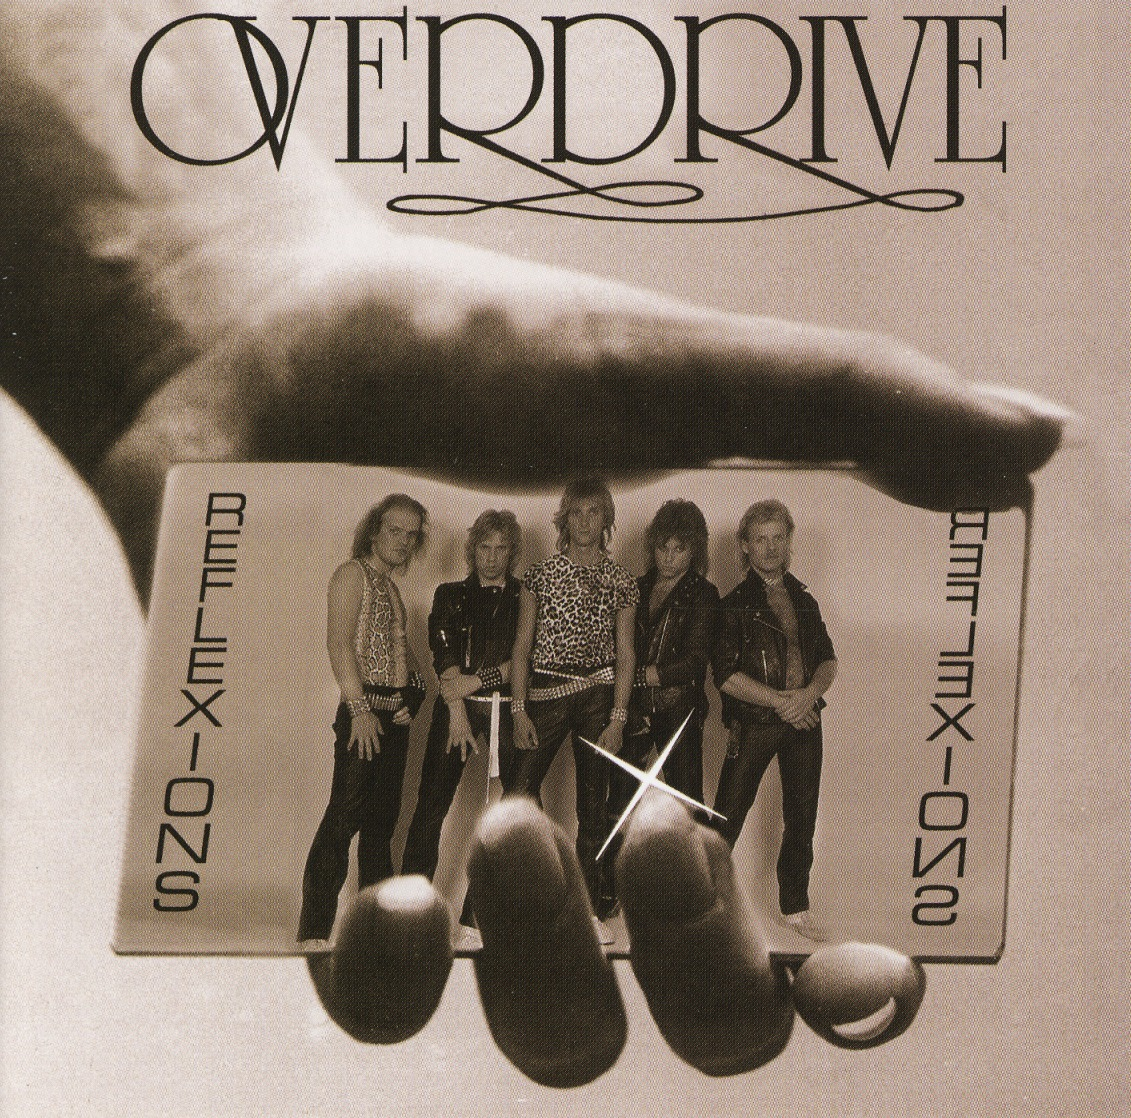 OVERDRIVE (Sweden) / Reflexions + 14